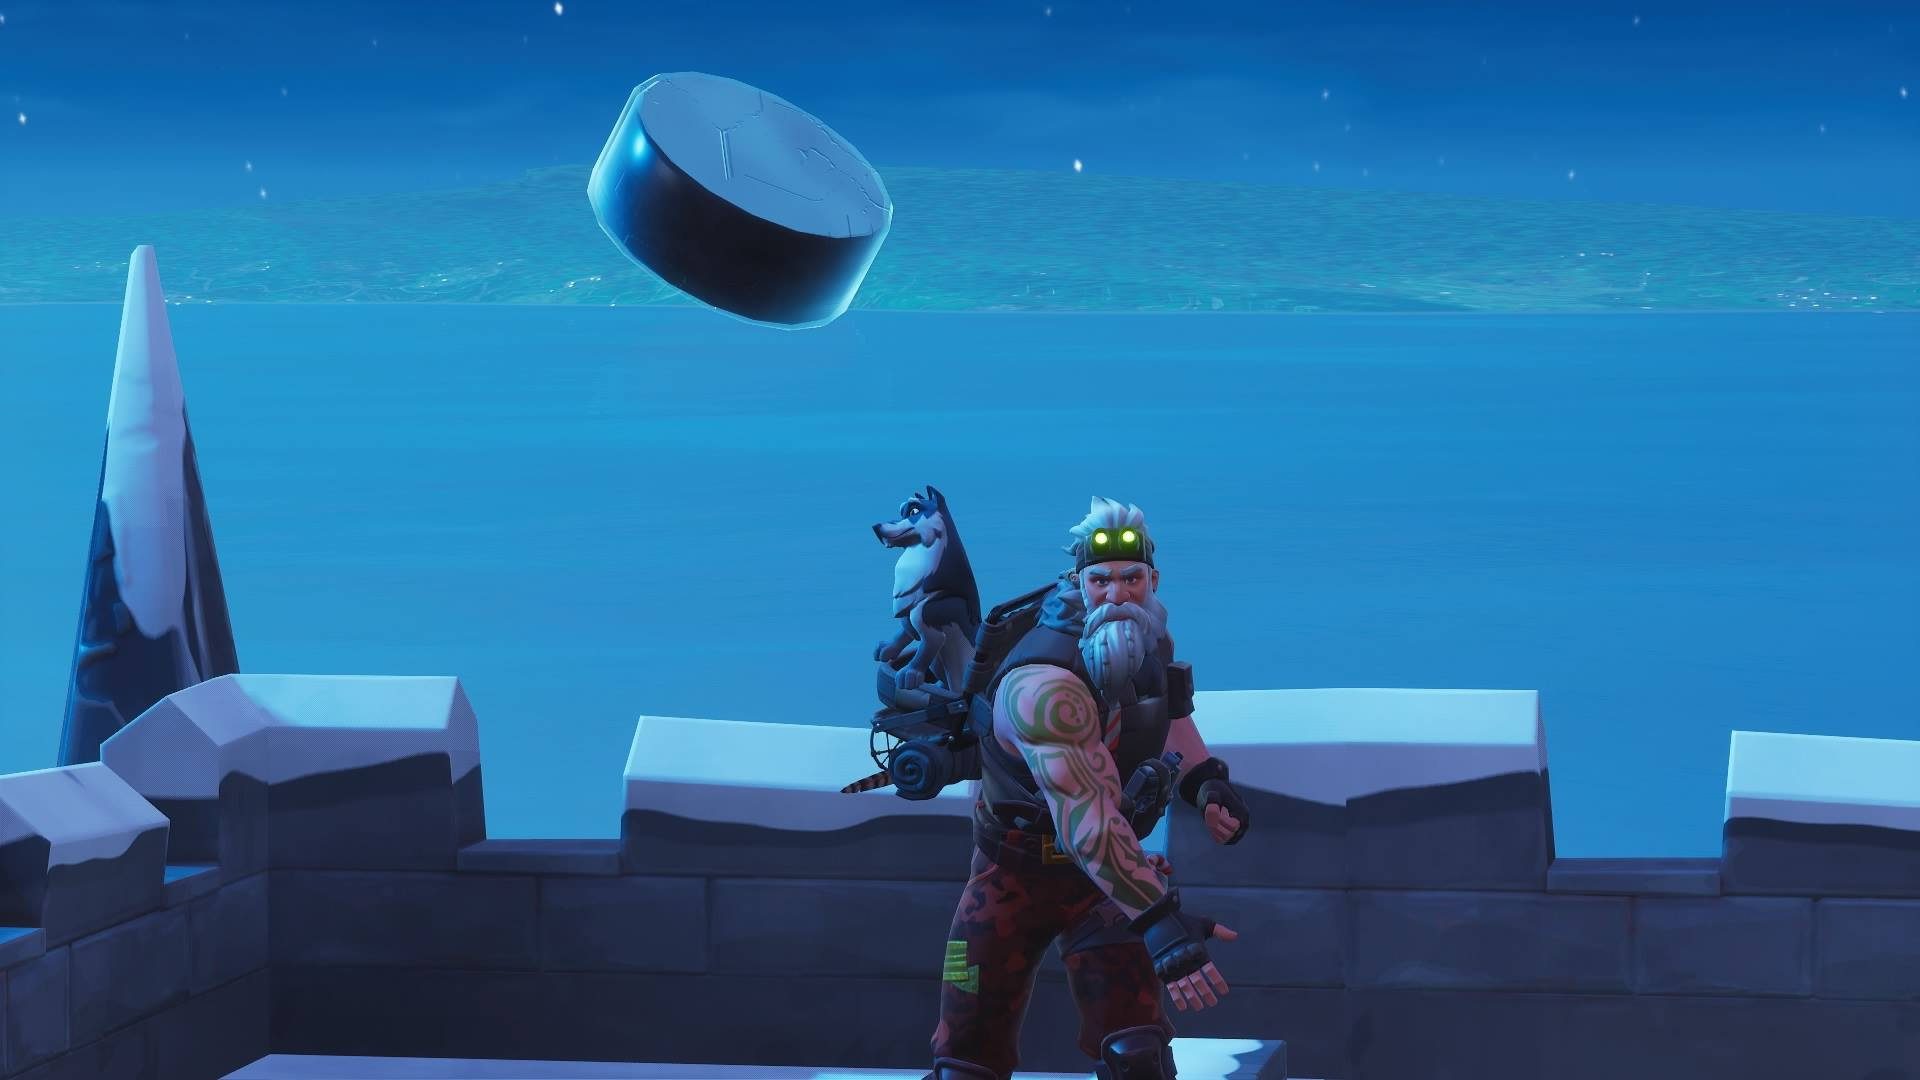 Fortnite' Ice Puck: Here's Where to Slide One 150m in a